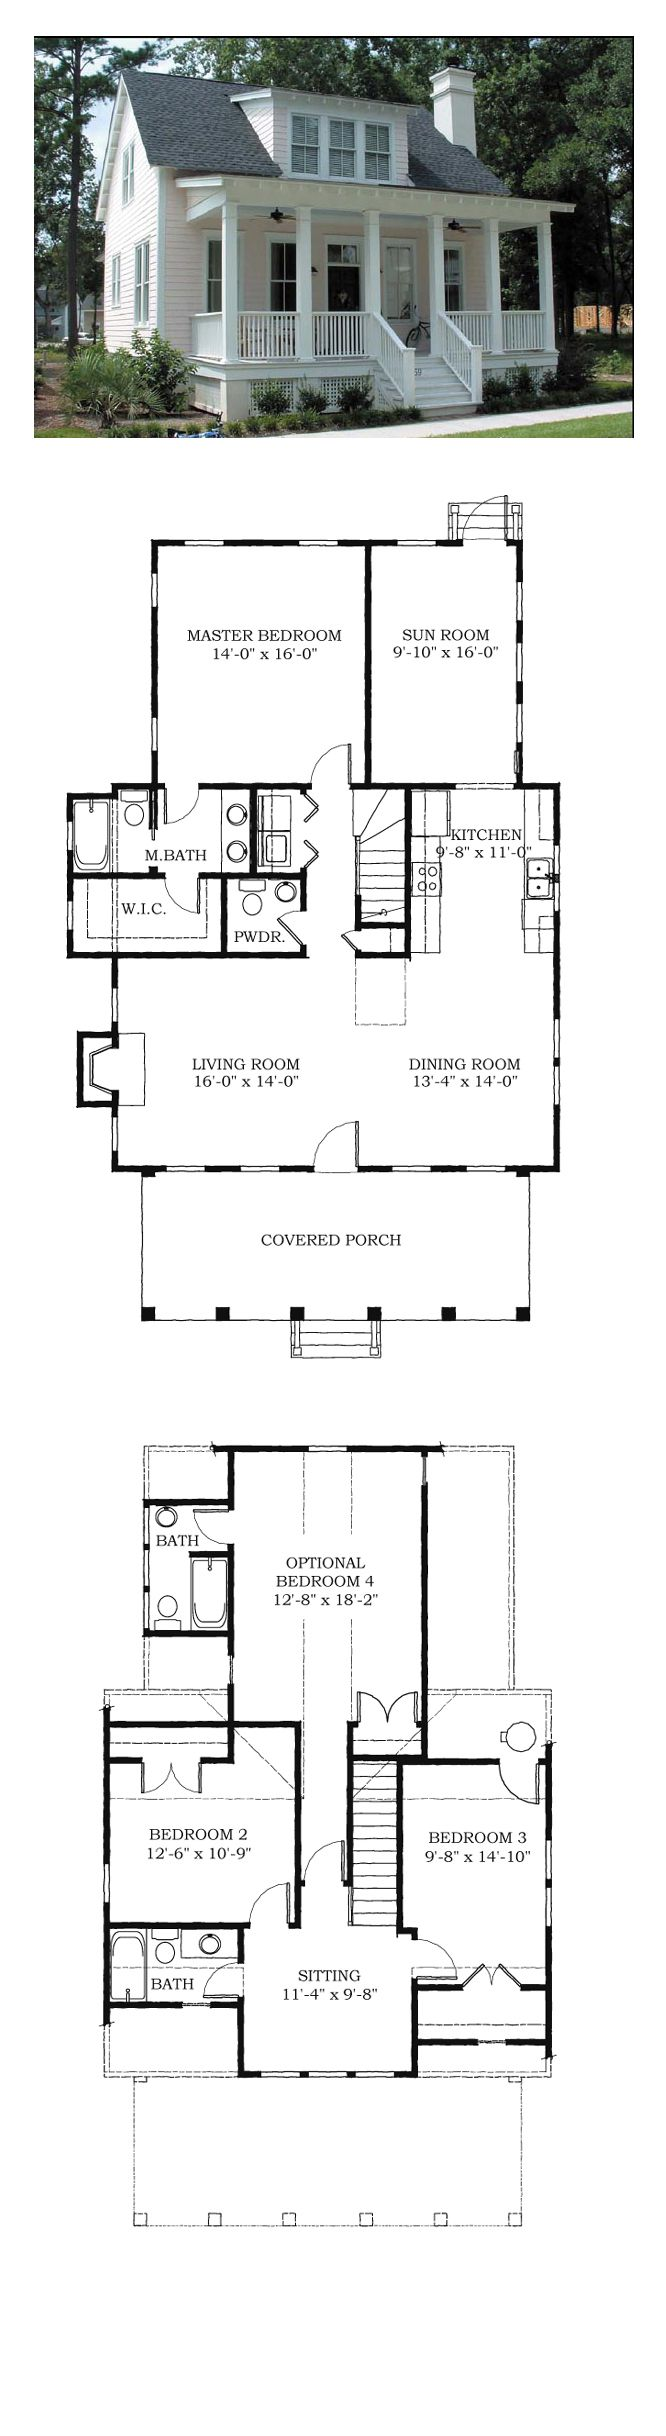 House Plan chp 38703 My Future Home